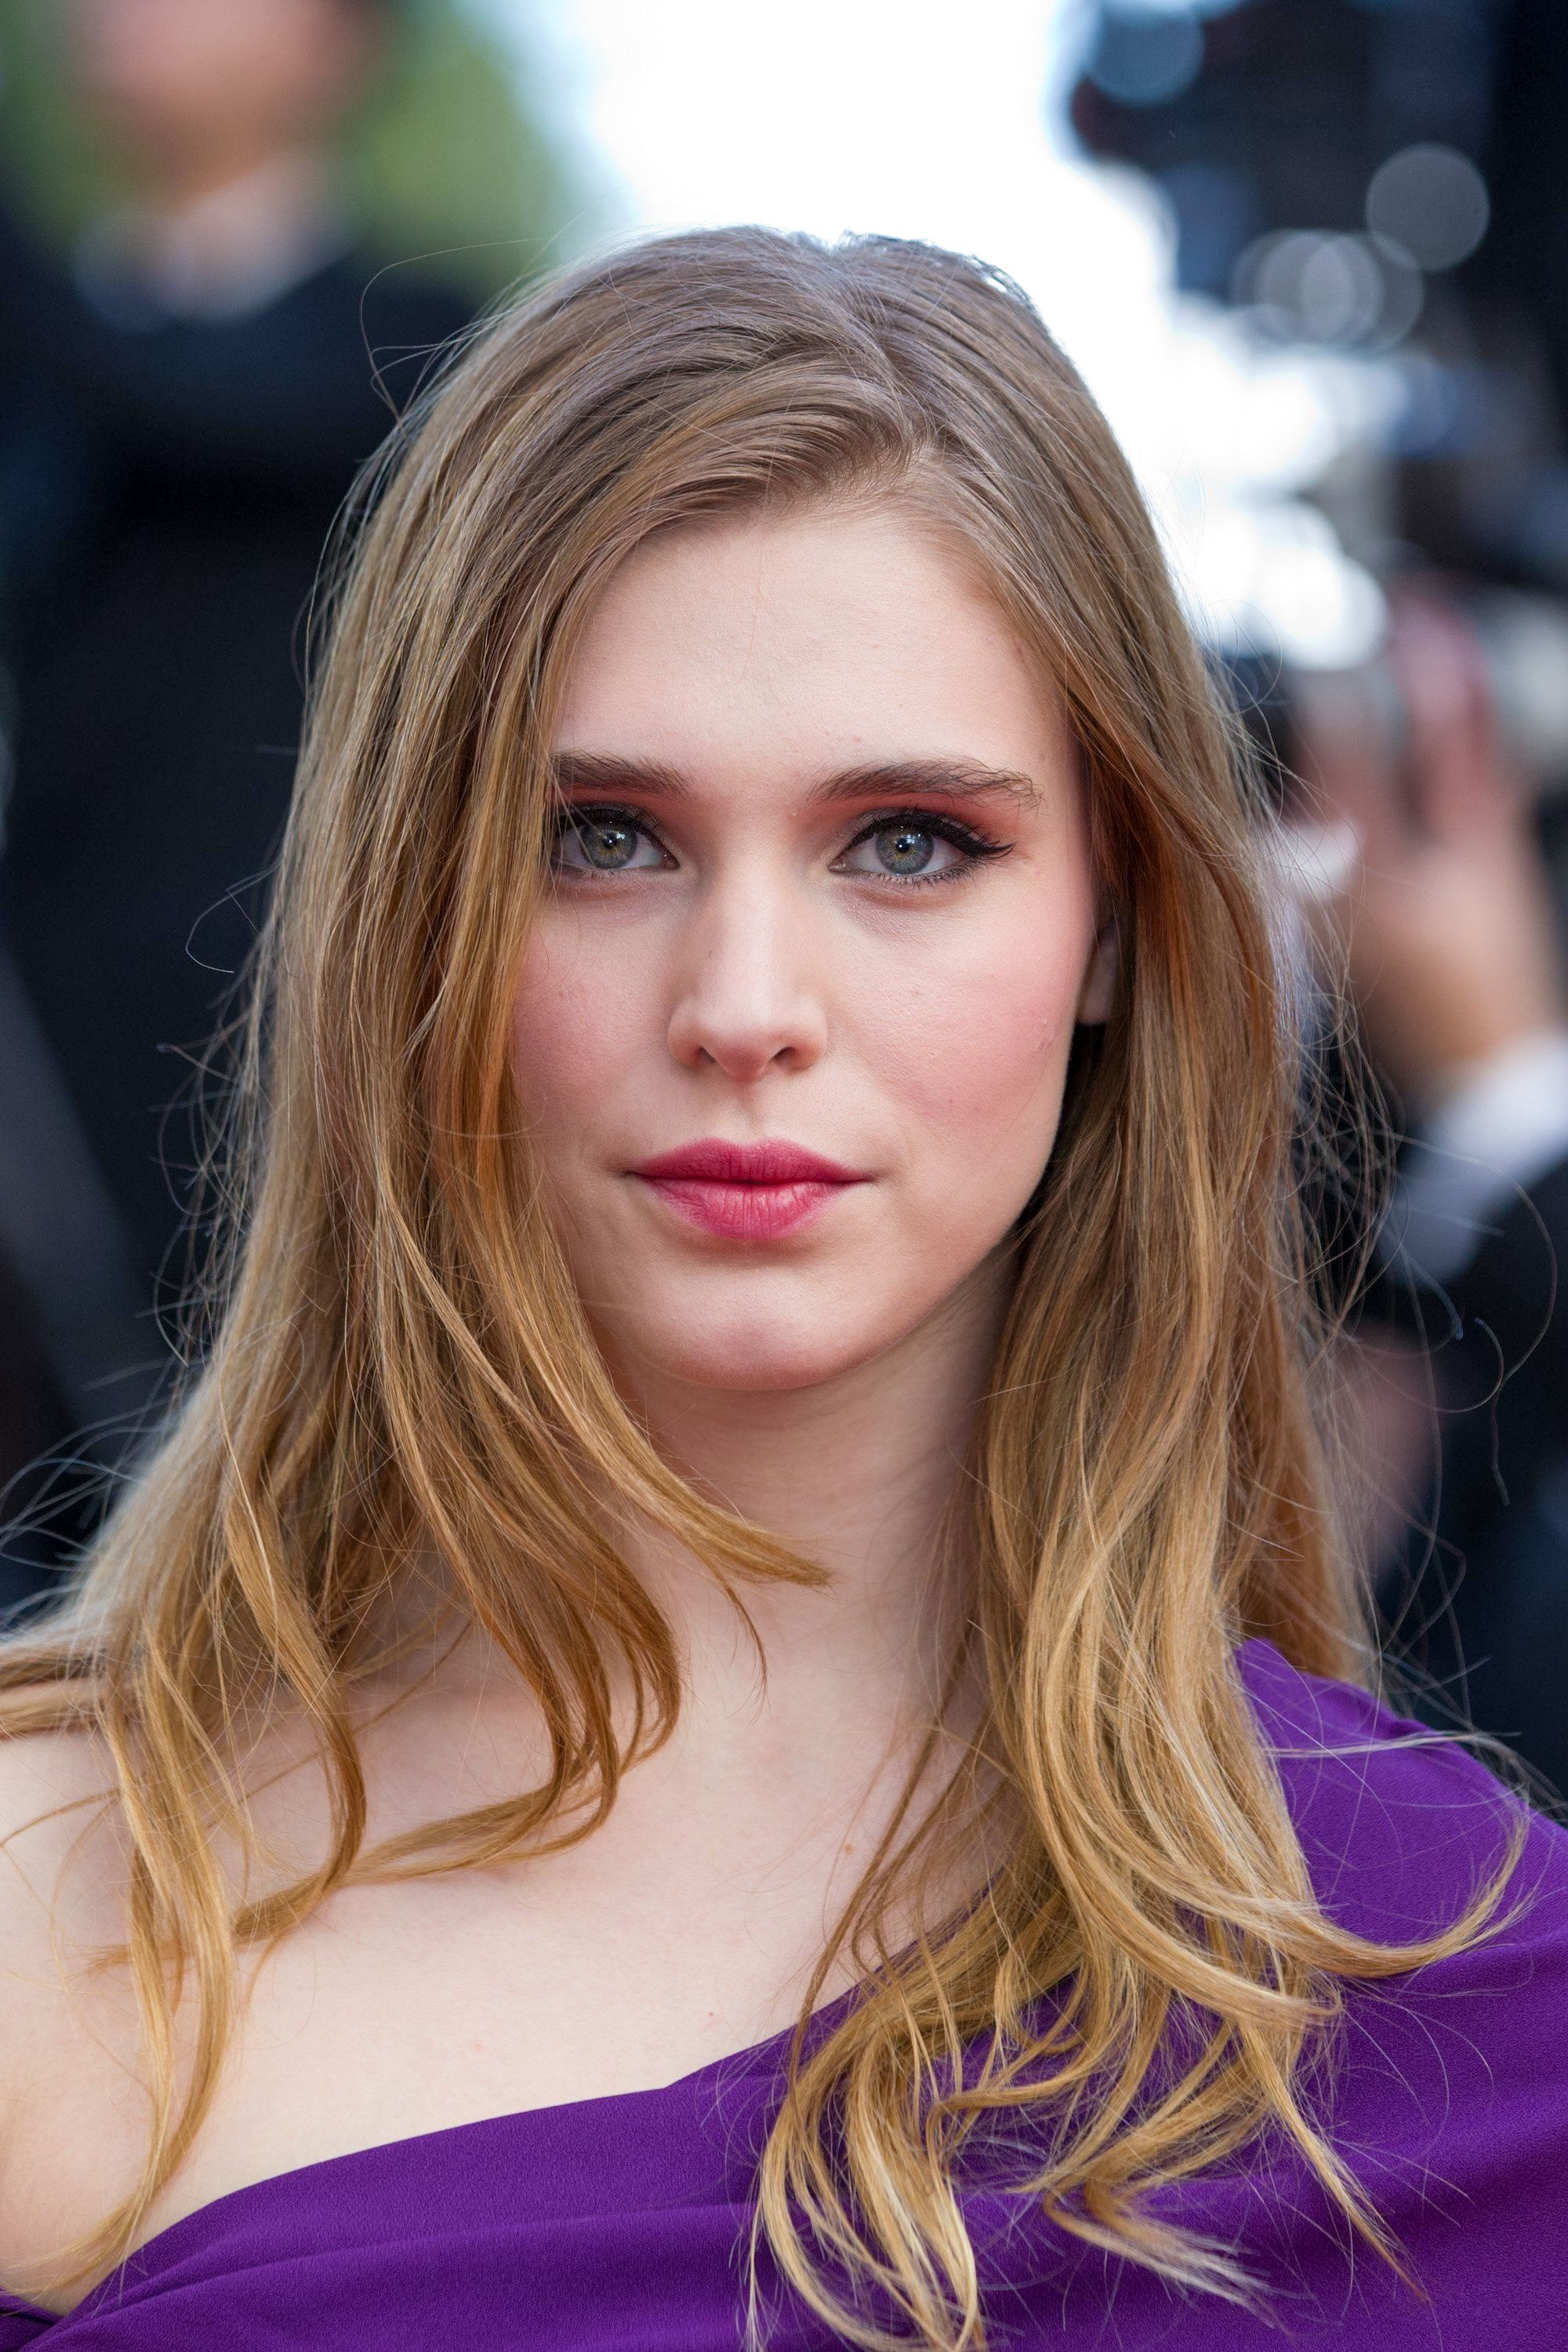 Snapchat Gaia Weiss naked (53 photos), Instagram